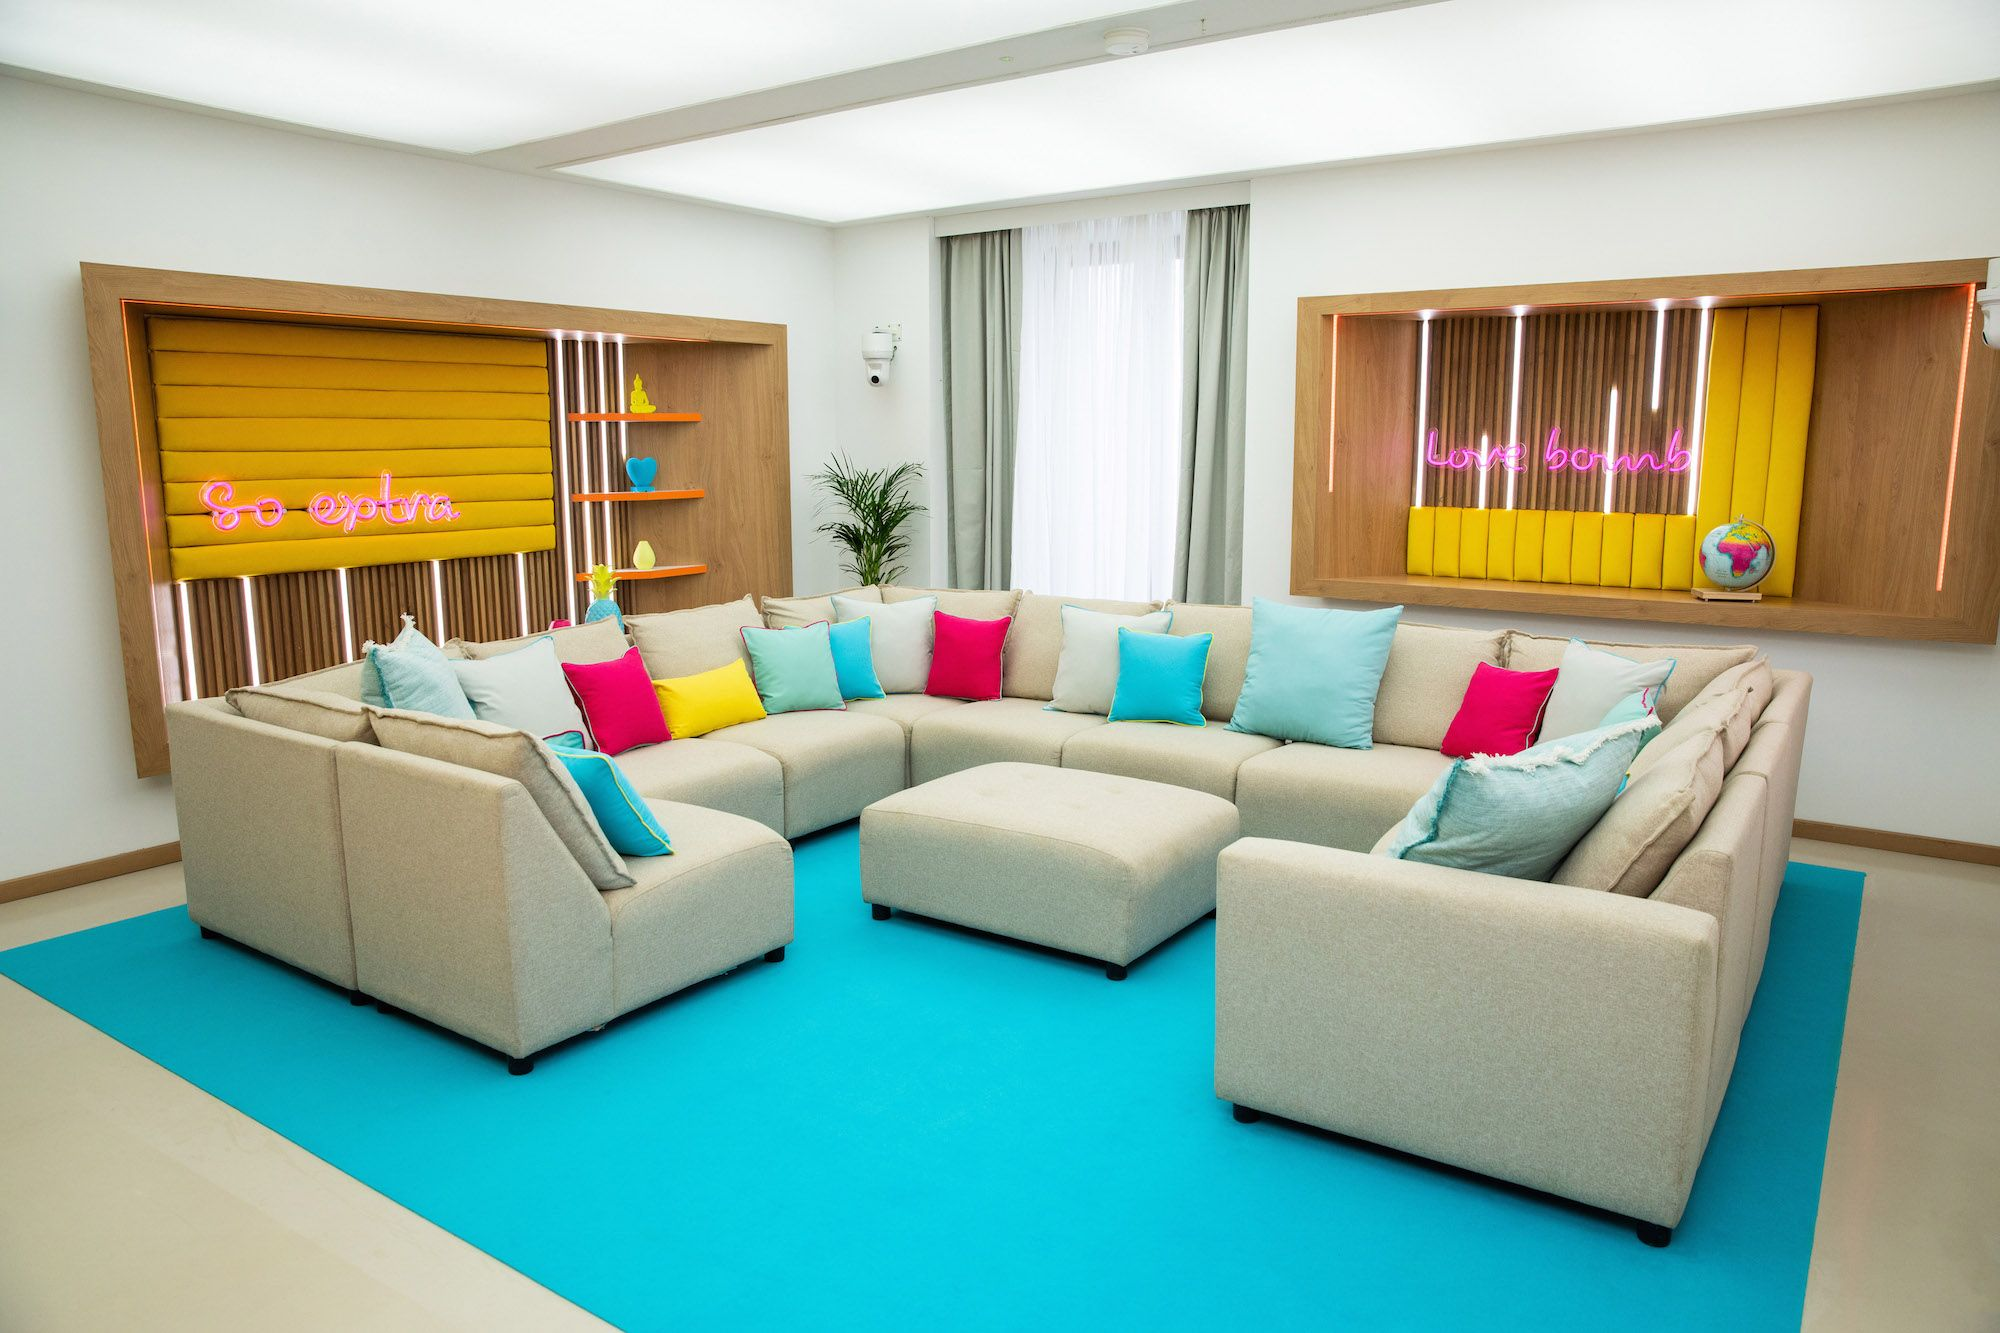 Image may contain: Love Island villa, Sant Llorenç des Cardassar, Love Island, villa, location, 2019, pictures, inside, first look, Pillow, Coffee Table, Cushion, Rug, Interior Design, Table, Living Room, Indoors, Room, Couch, Furniture